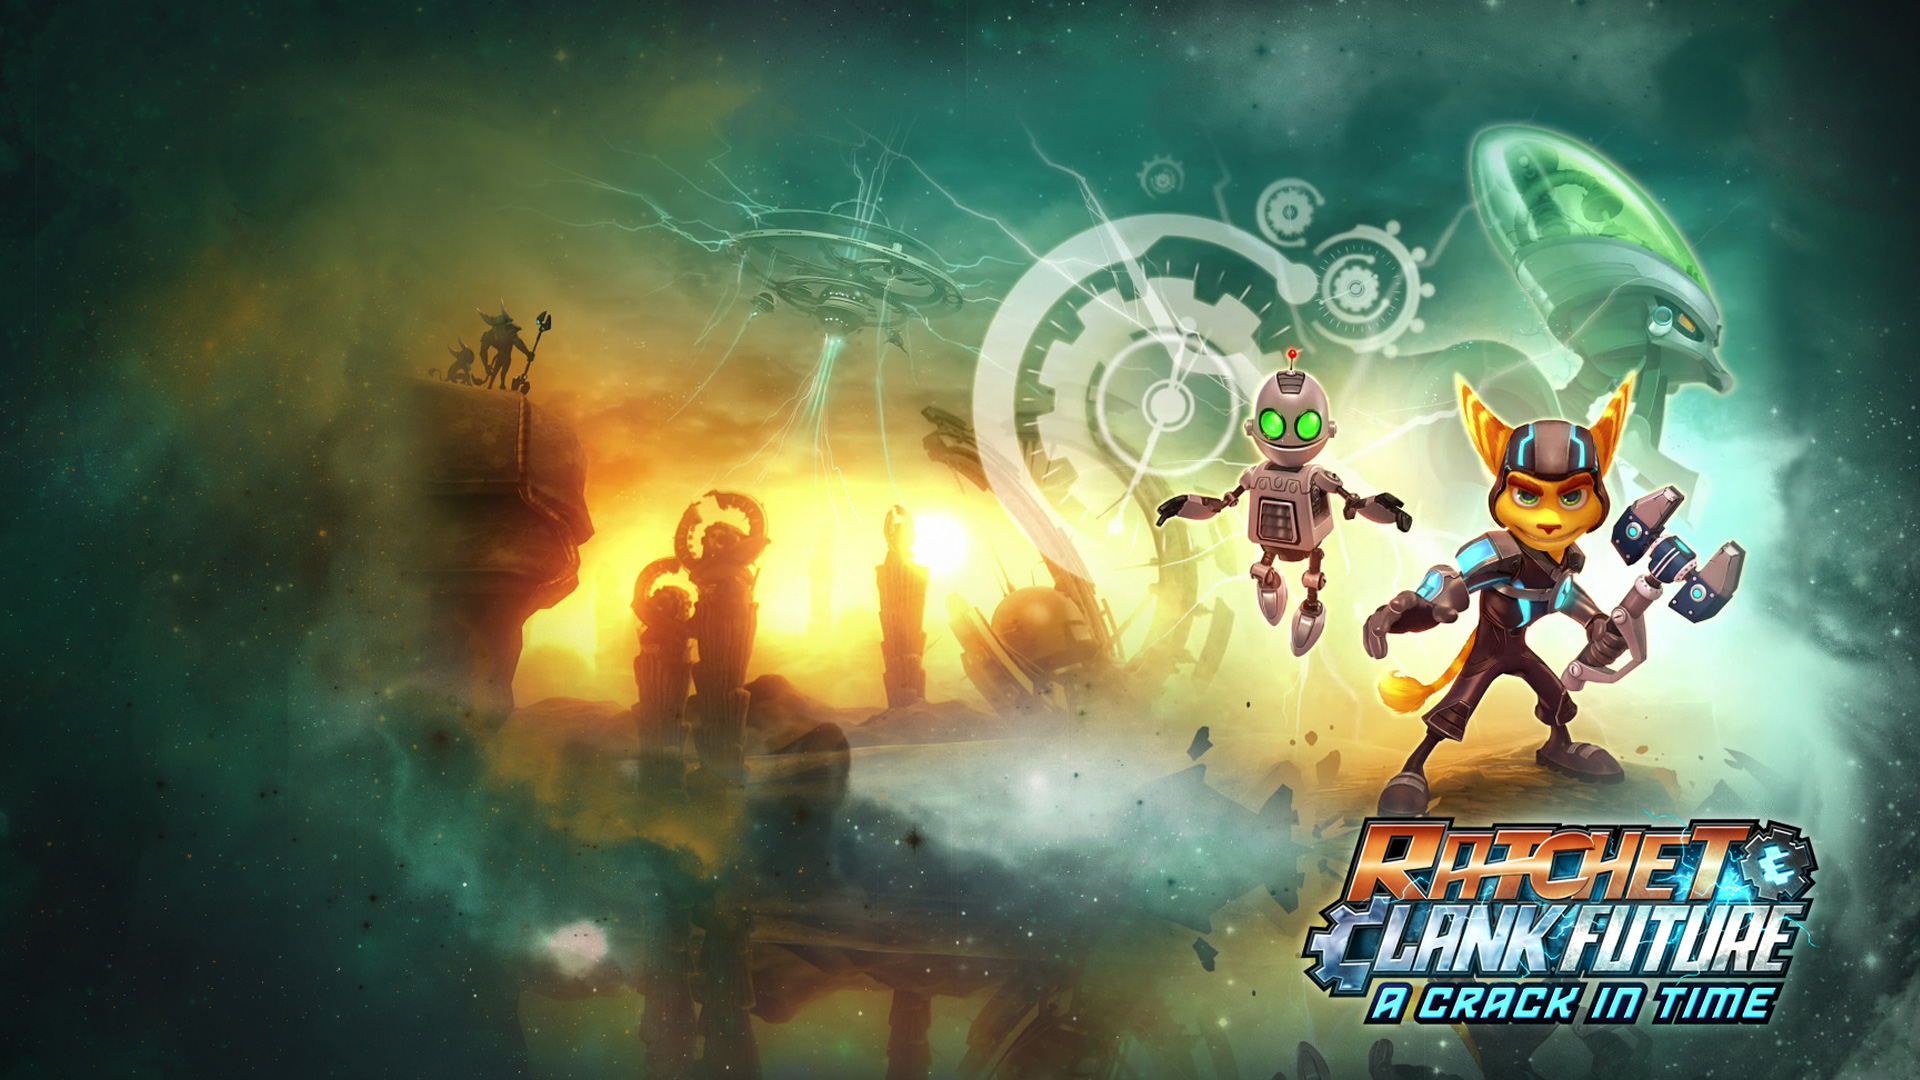 Free Ratchet & Clank Future: A Crack in Time Wallpaper in 1920x1080